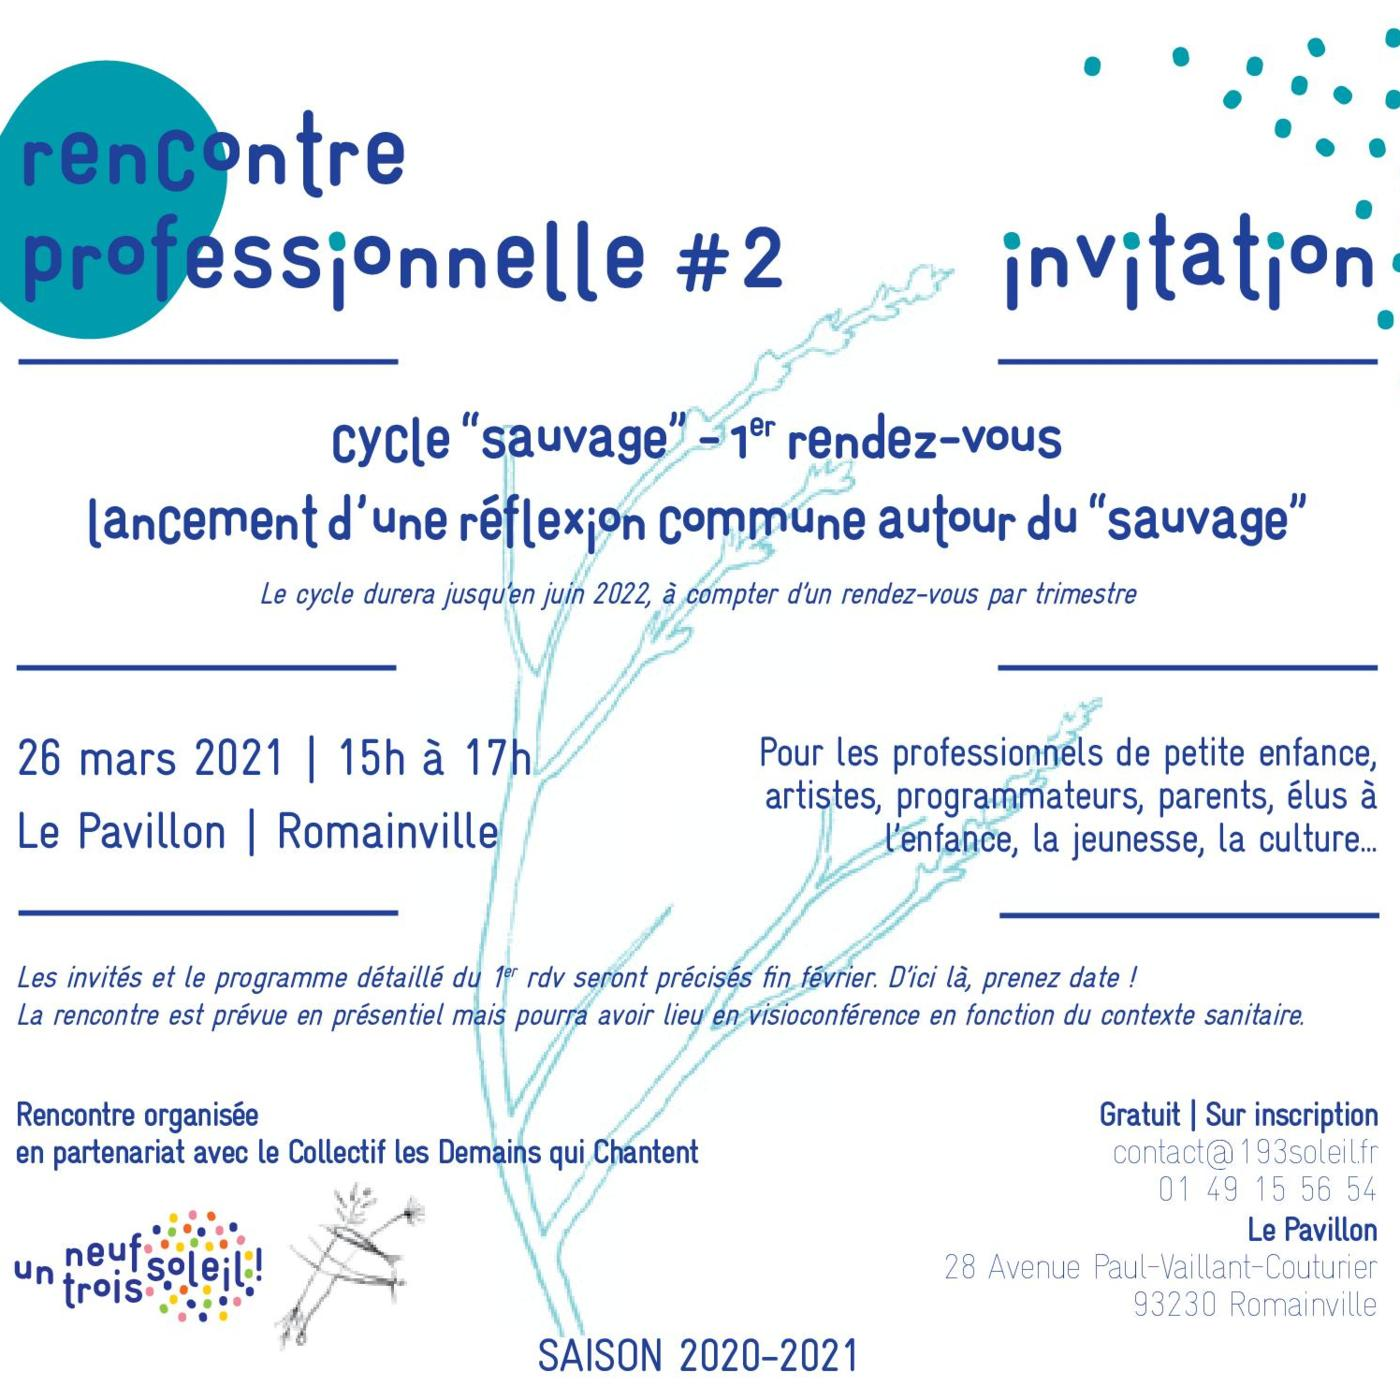 Rencontre Professionnelle #1 - Cycle sauvage - 26 mars 2021